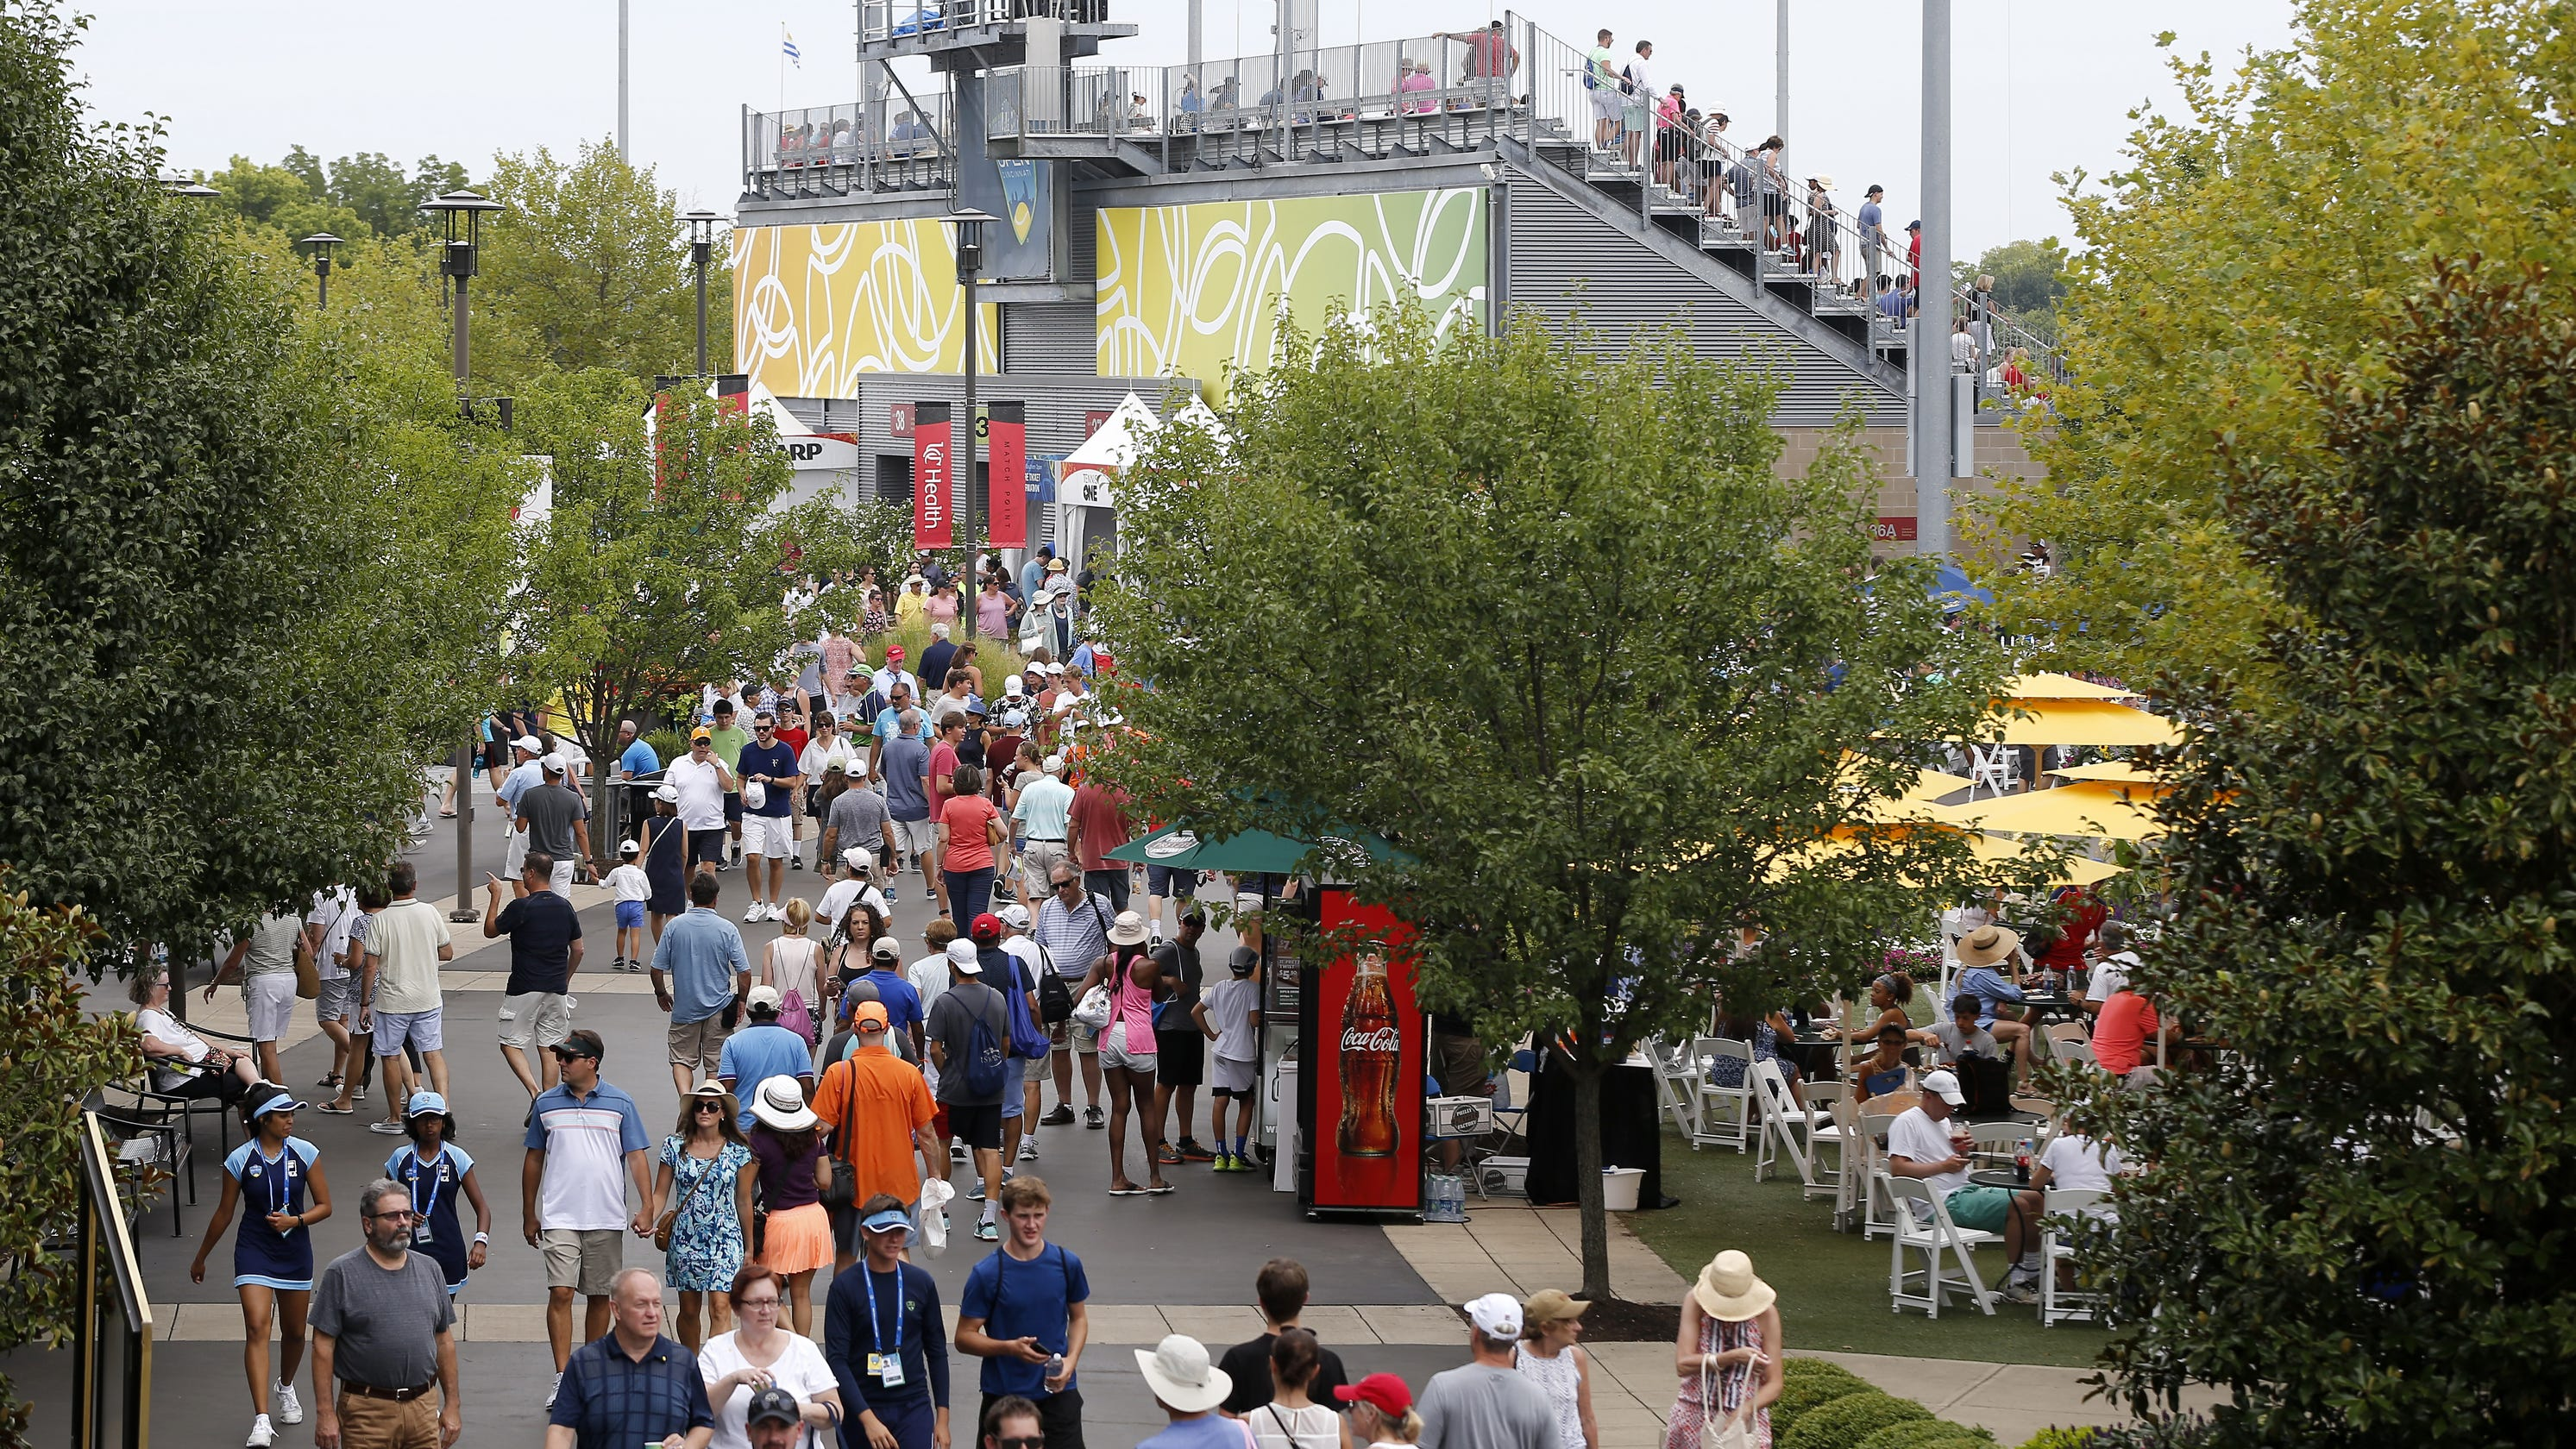 Proposal could move Western Southern Open tennis from Mason to New York, per report